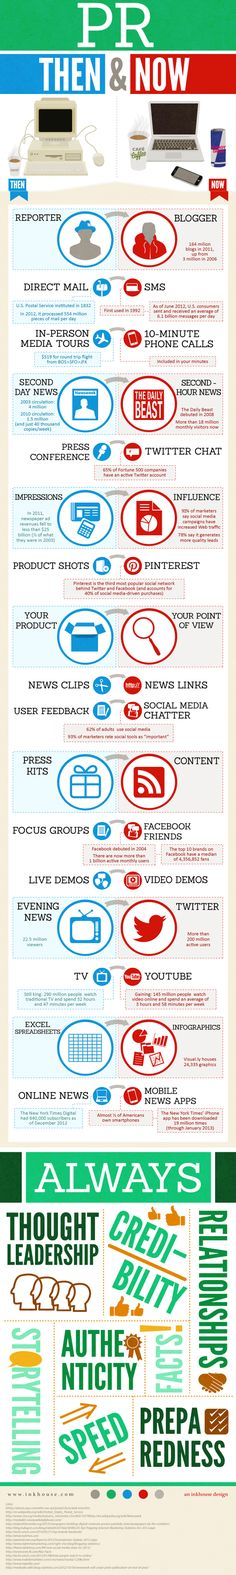 How many of these will you admit to remembering? Public Relations Then & Now